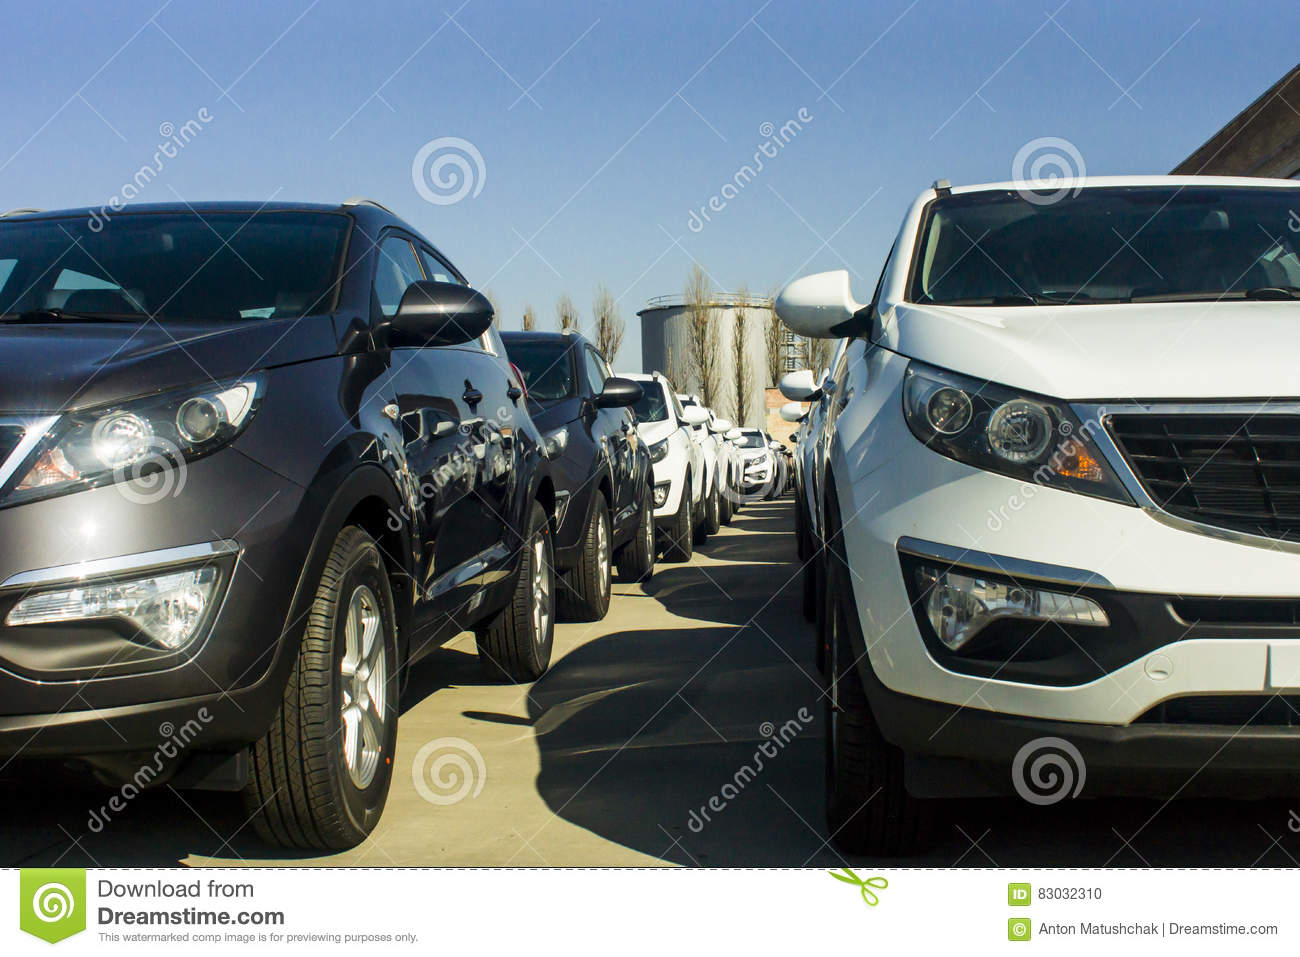 A Row Of New Cars Parked At A Car Dealer Shop Stock Photo Image